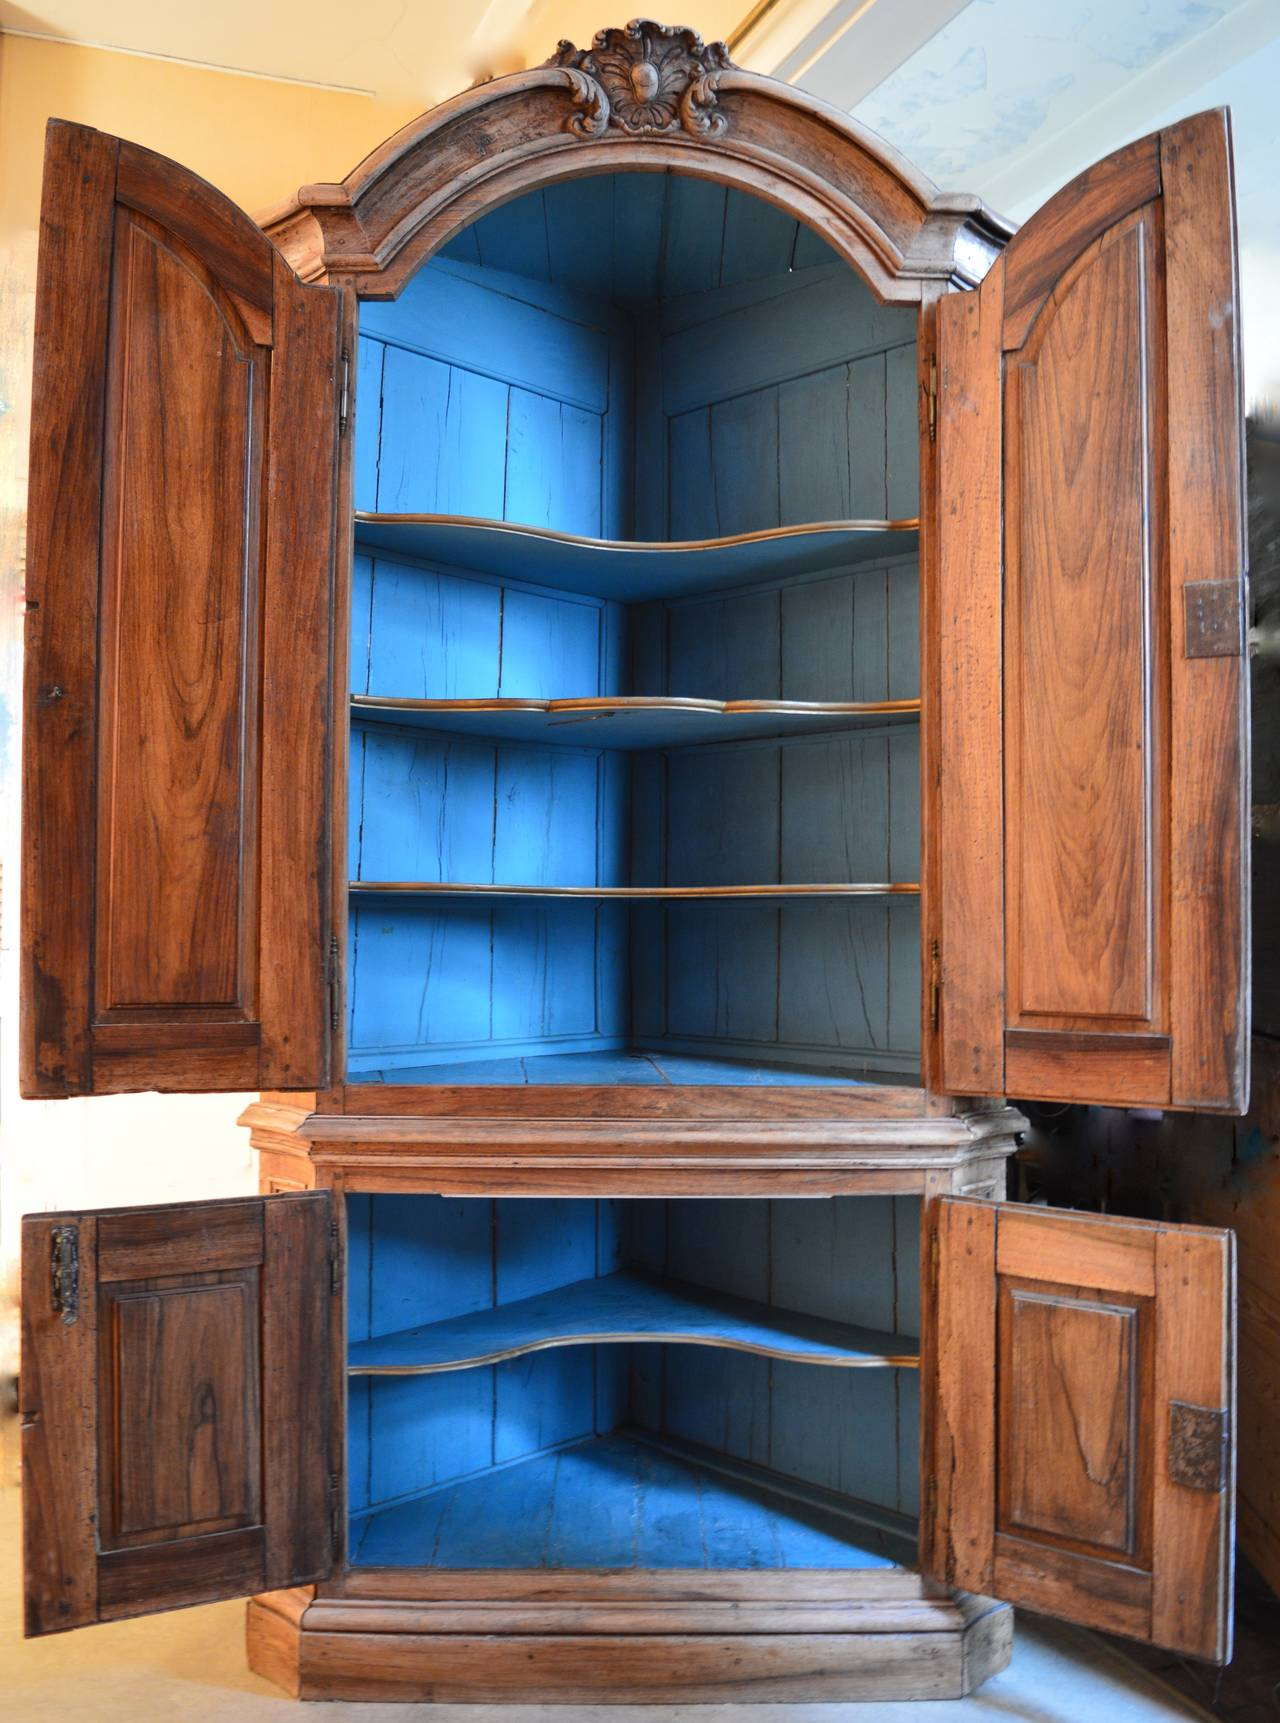 furniture cupboard wardrobes victorian gallery antiques glasgow storages trendy photos showing attachment within sale accent of for city explore